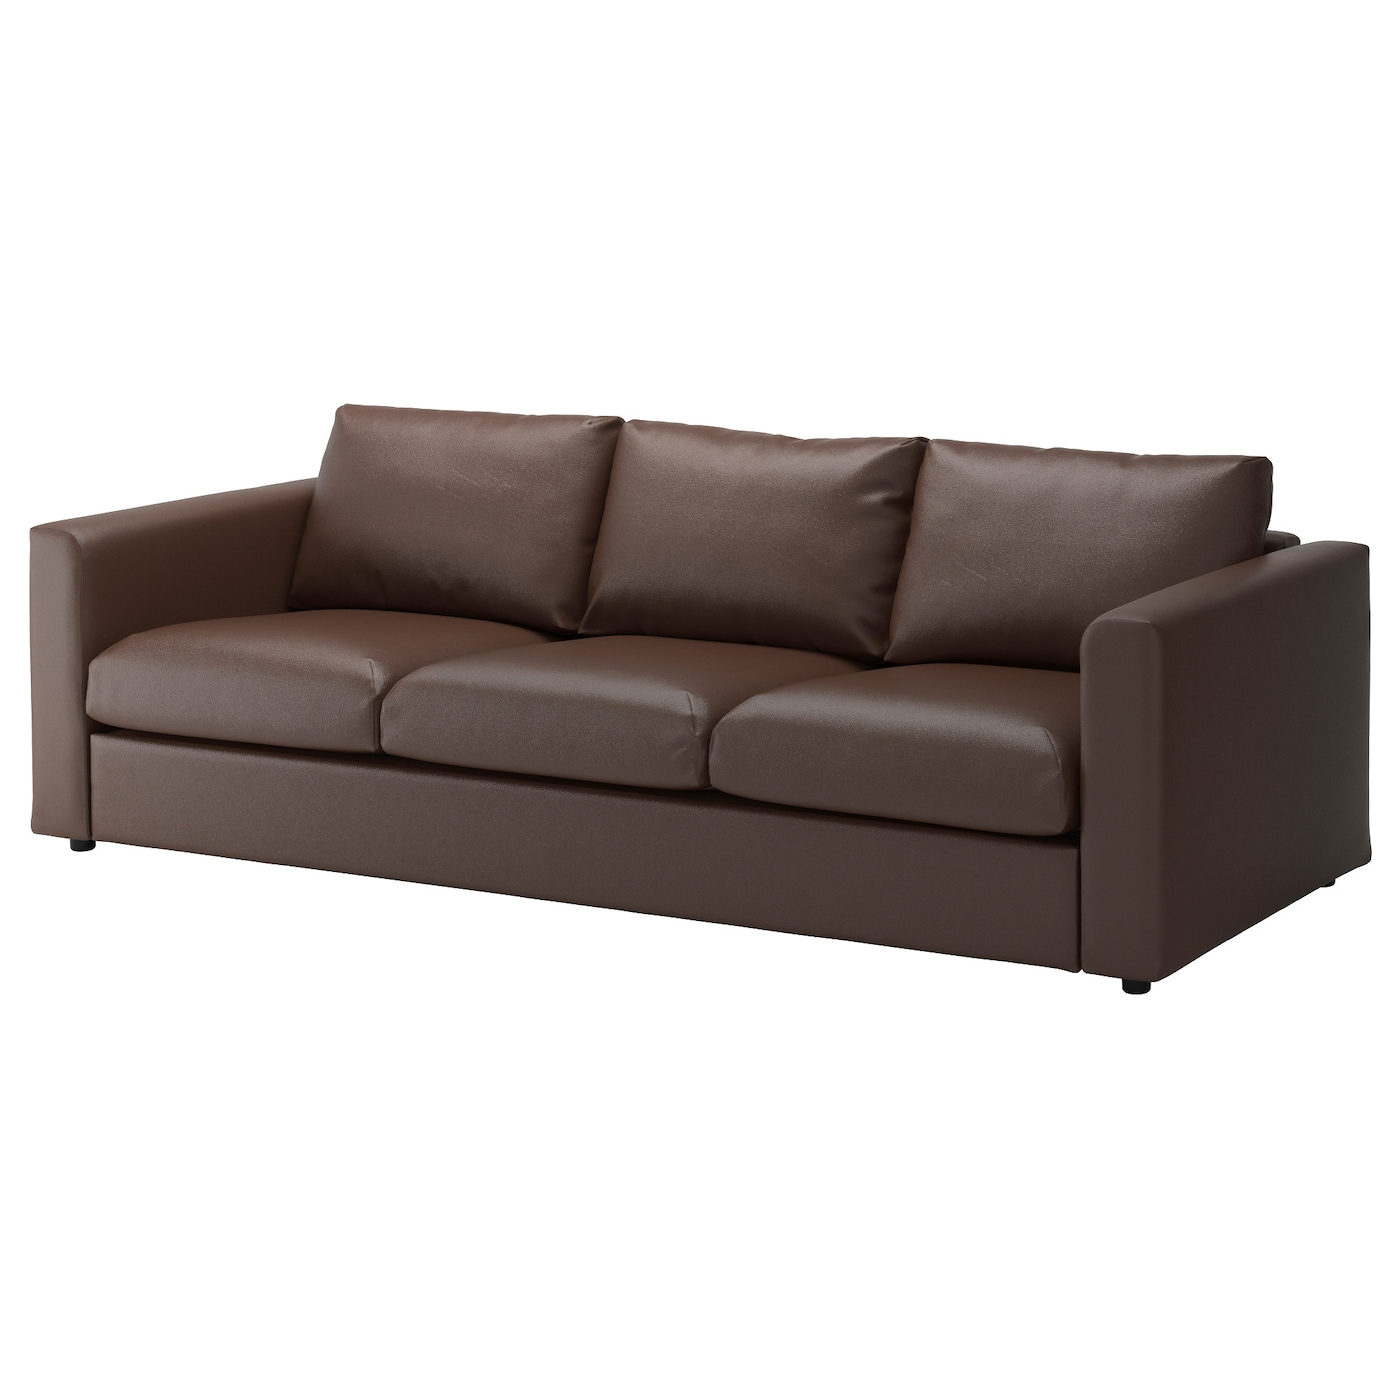 vimle 3 seat sofa farsta dark brown ikea. Black Bedroom Furniture Sets. Home Design Ideas